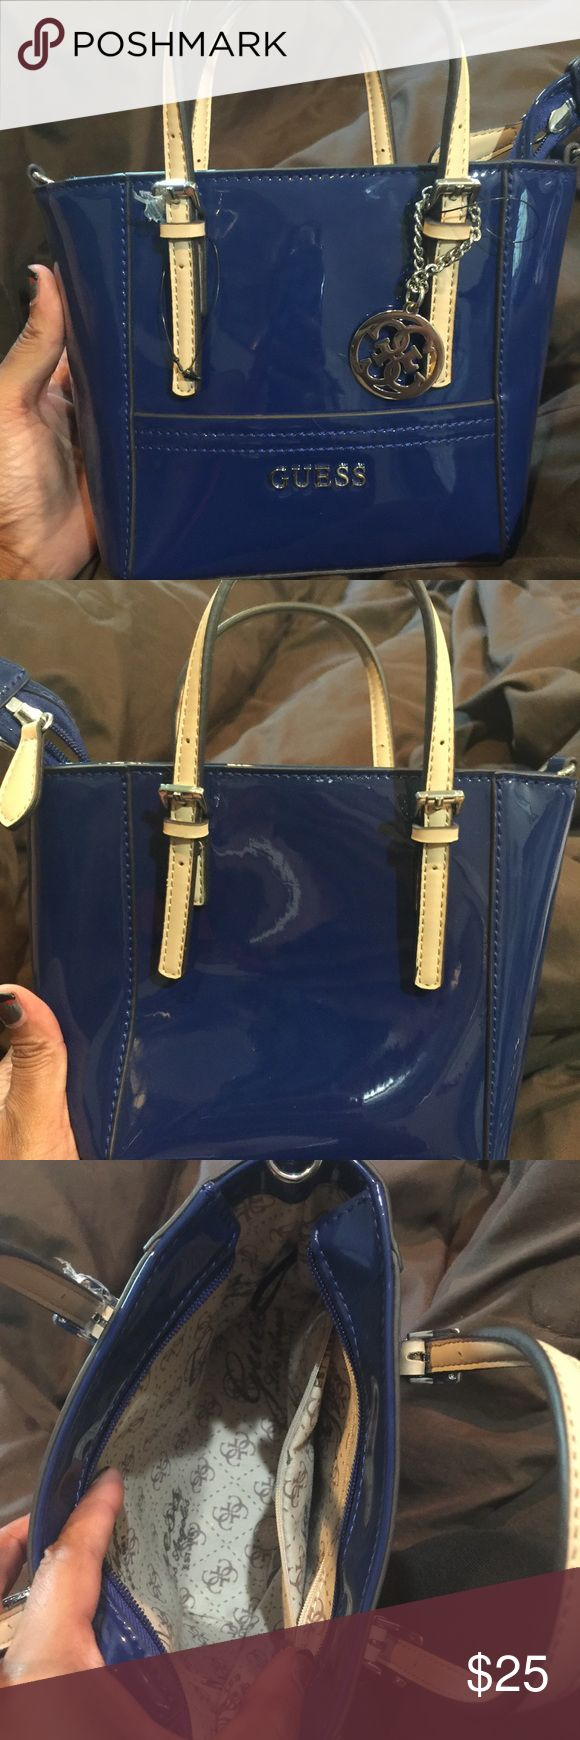 NWOT. NEVER USED. Authentic blue GUESS purse Guess purse New As shown No trades Instagram.com/stormyxstorm GUESS Bags